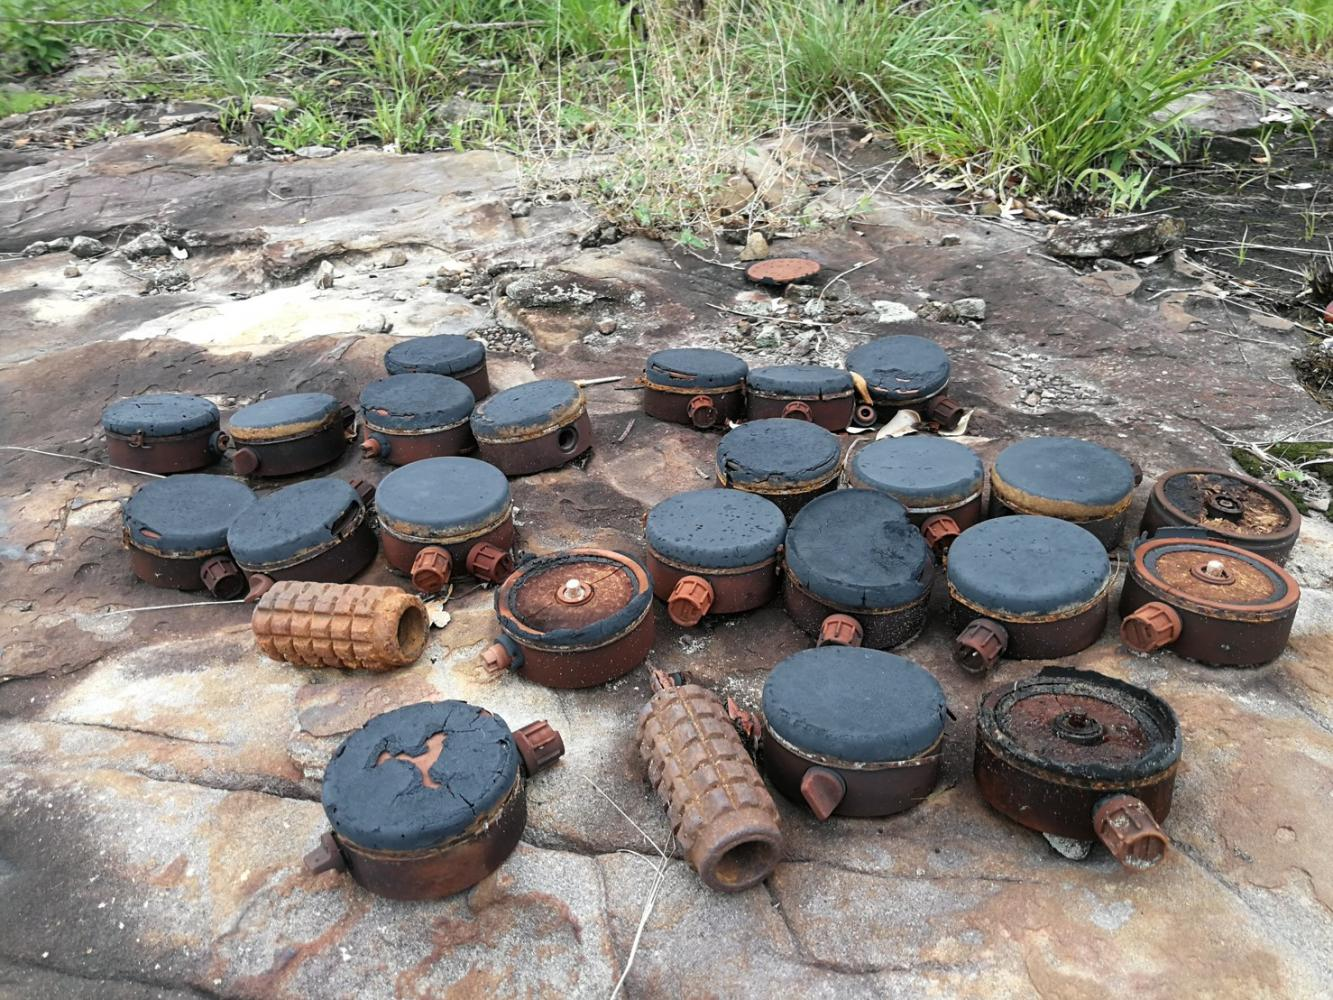 Types of landmines are seen that have been found on Hill 500.TMAC